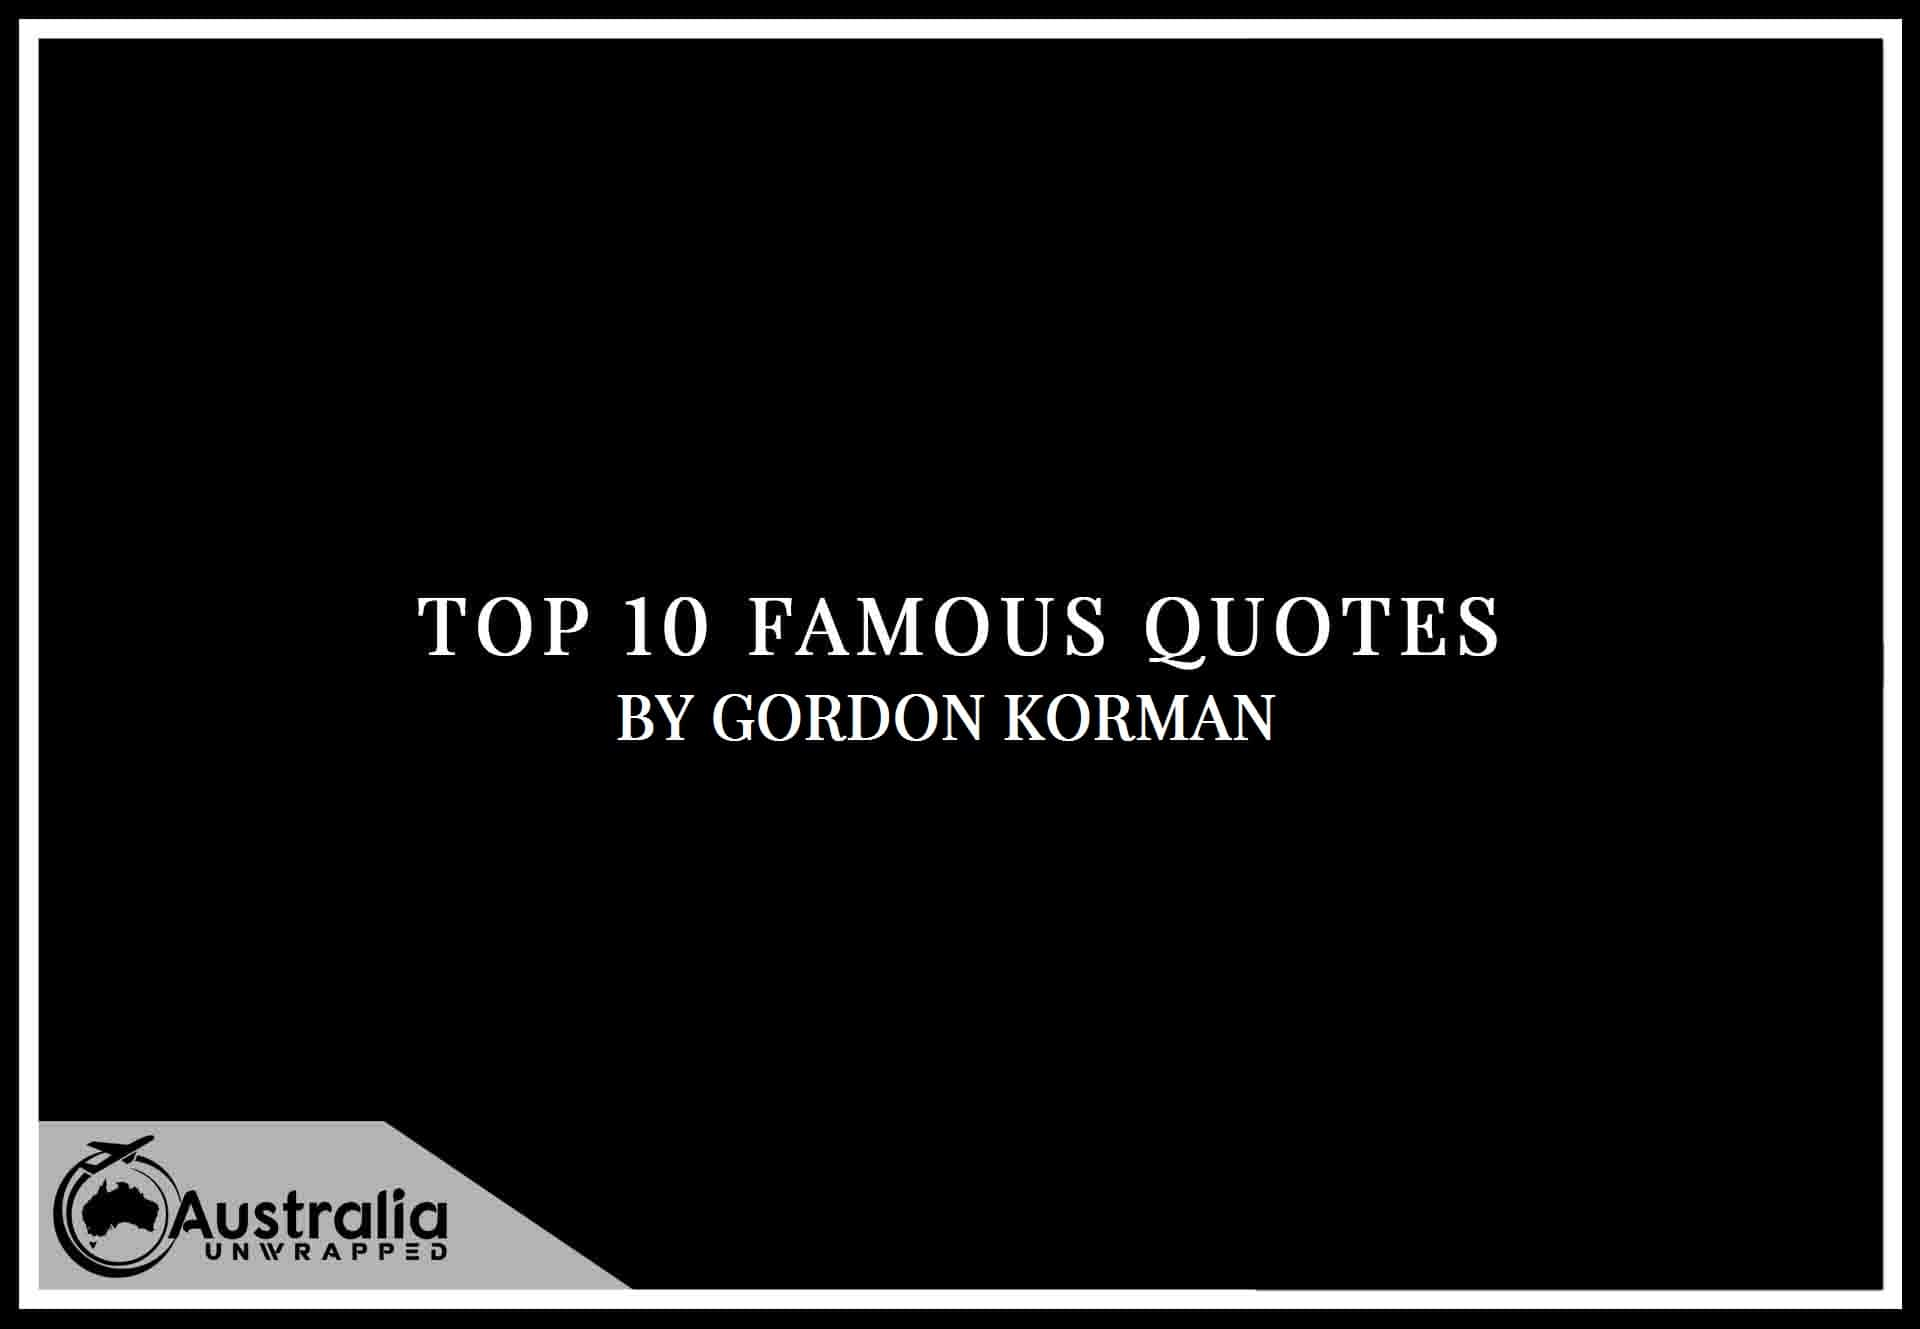 Gordon Korman's Top 10 Popular and Famous Quotes